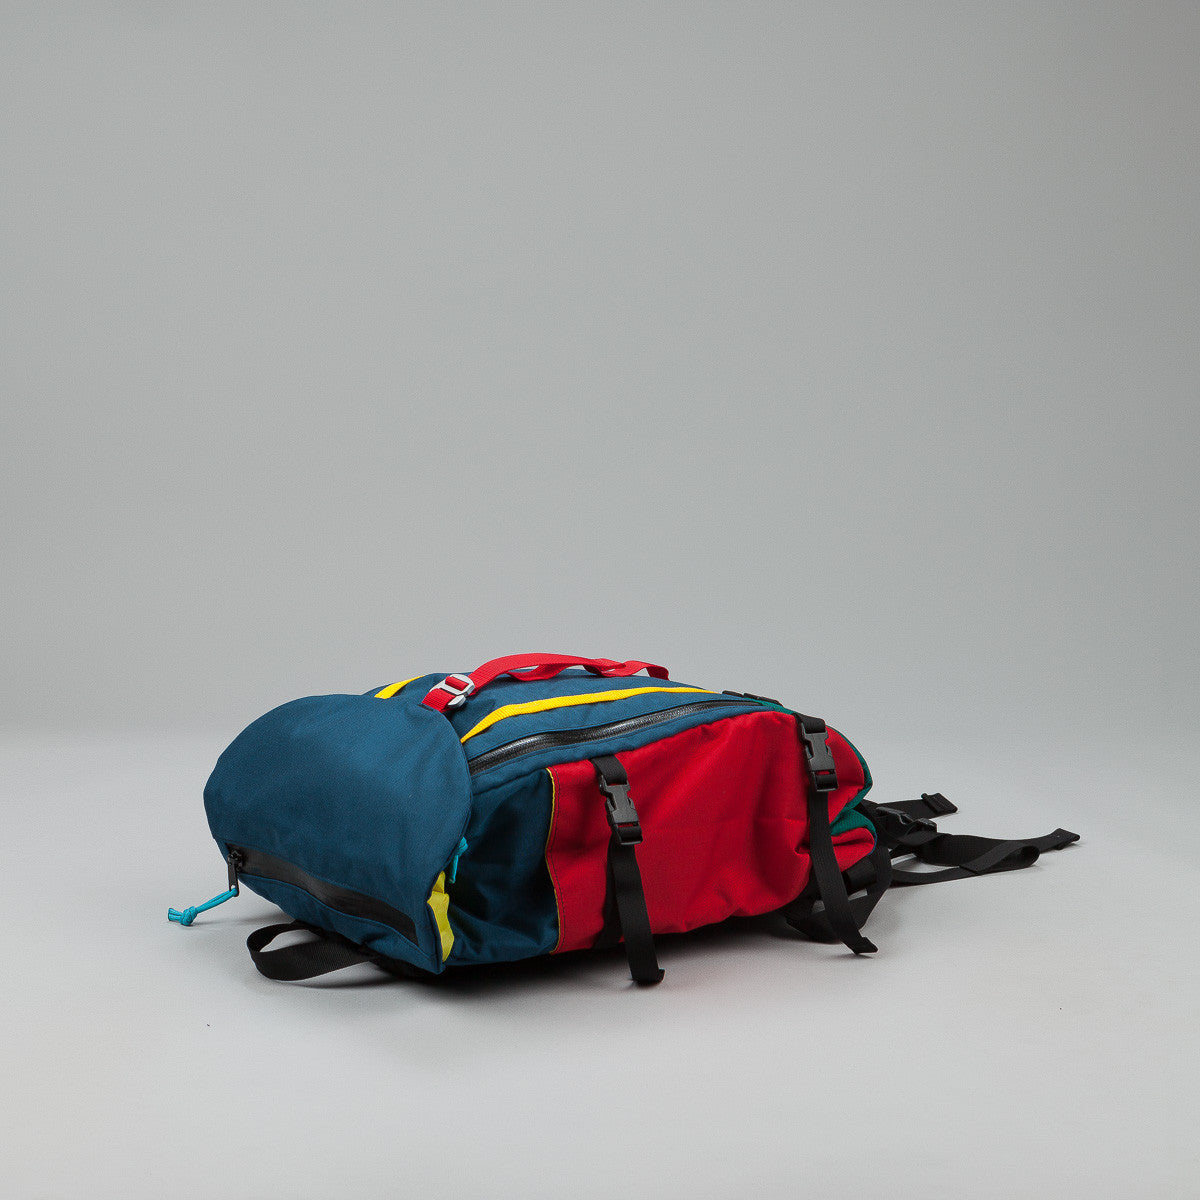 Topo Designs Mountain Pack - Navy